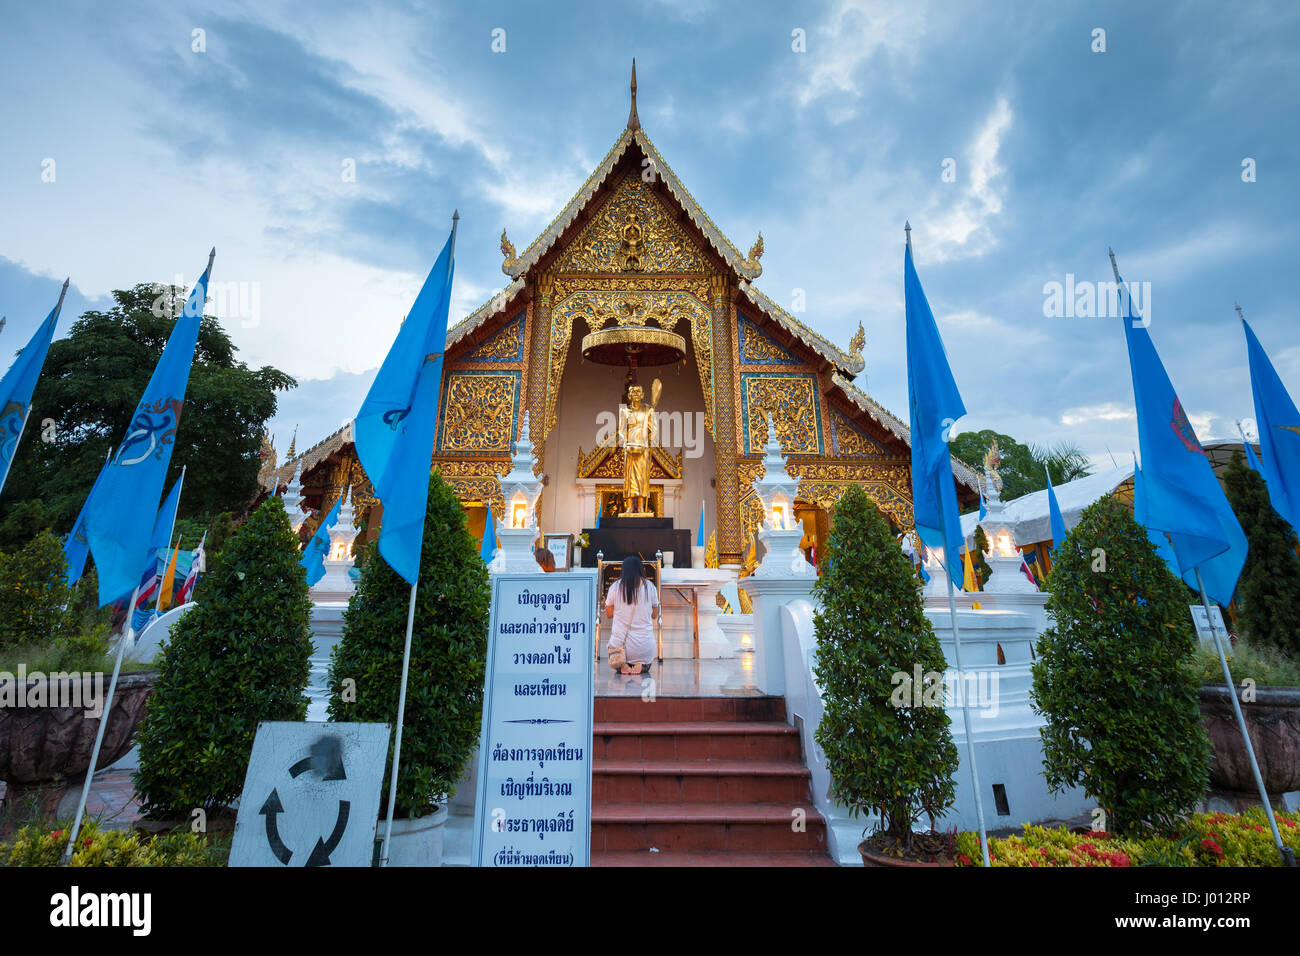 Chiang Mai, Thailand - August 21, 2016: Woman pray at the Wat Phra Singh temple decorated with Queens Blue Flags on August 21, 2016 in Chinag Mai, Tha Stock Photo